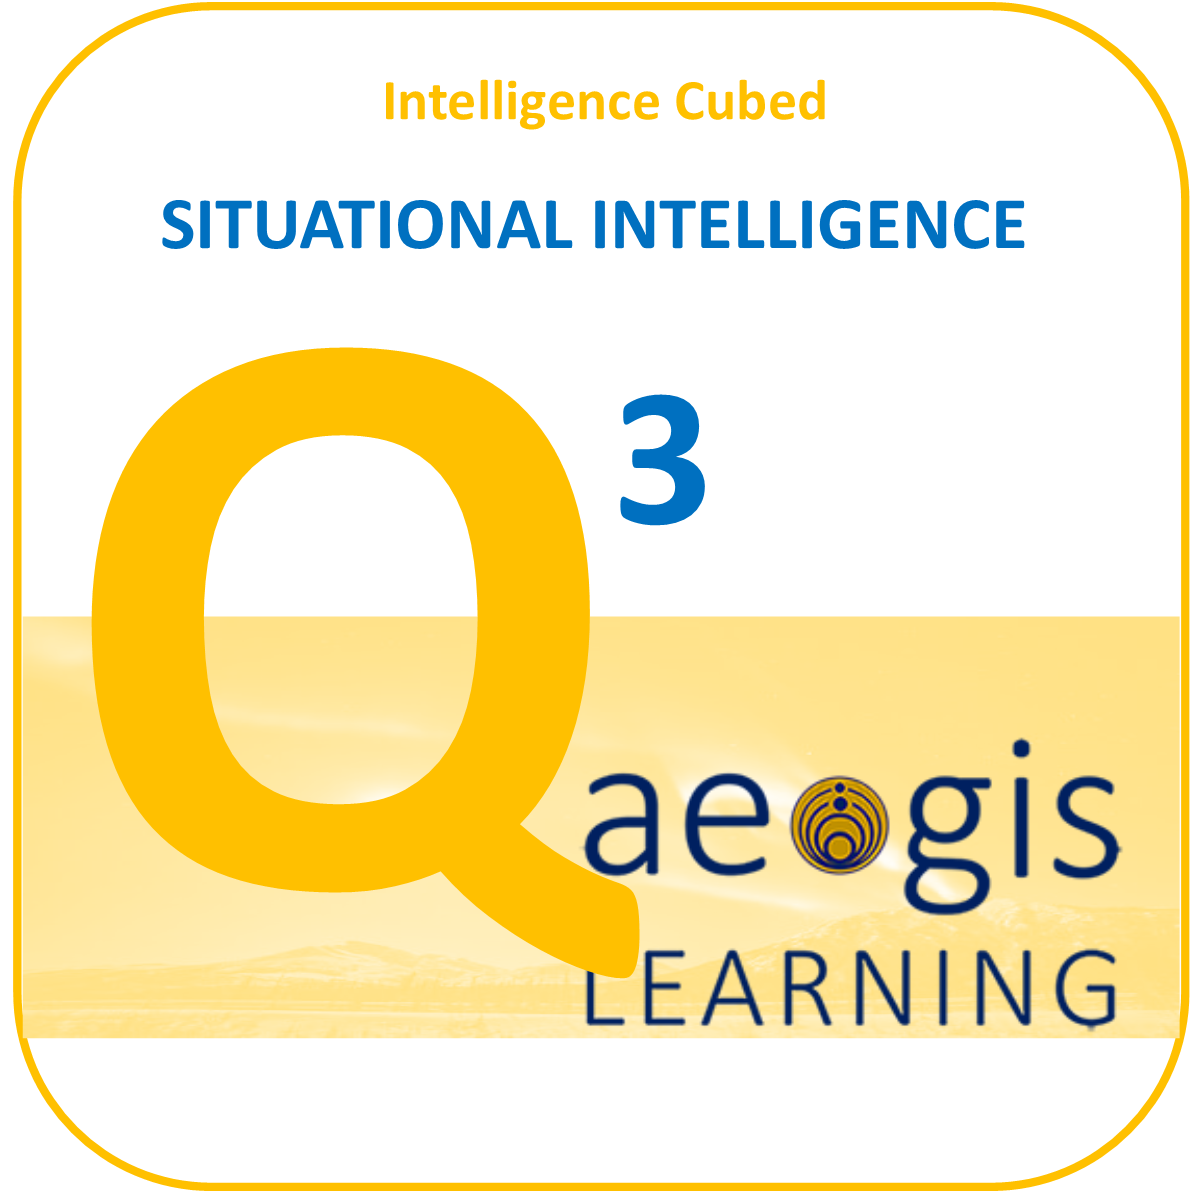 Situational Intelligence is an Aegis Learning Exclusive Program